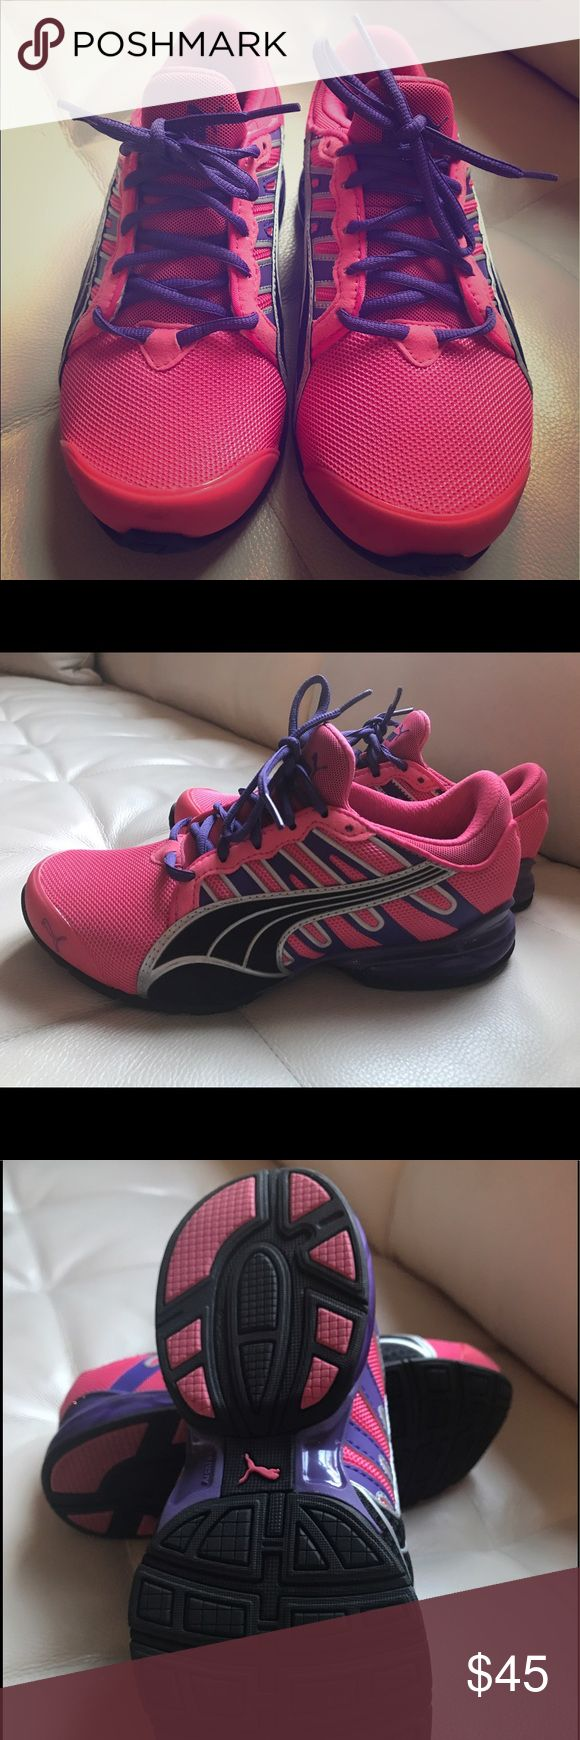 Brand New Puma Sneakers!! Brand New. Never worn but no box. Ladies size 6.5 running sneaker. Pink and purple Puma Shoes Sneakers